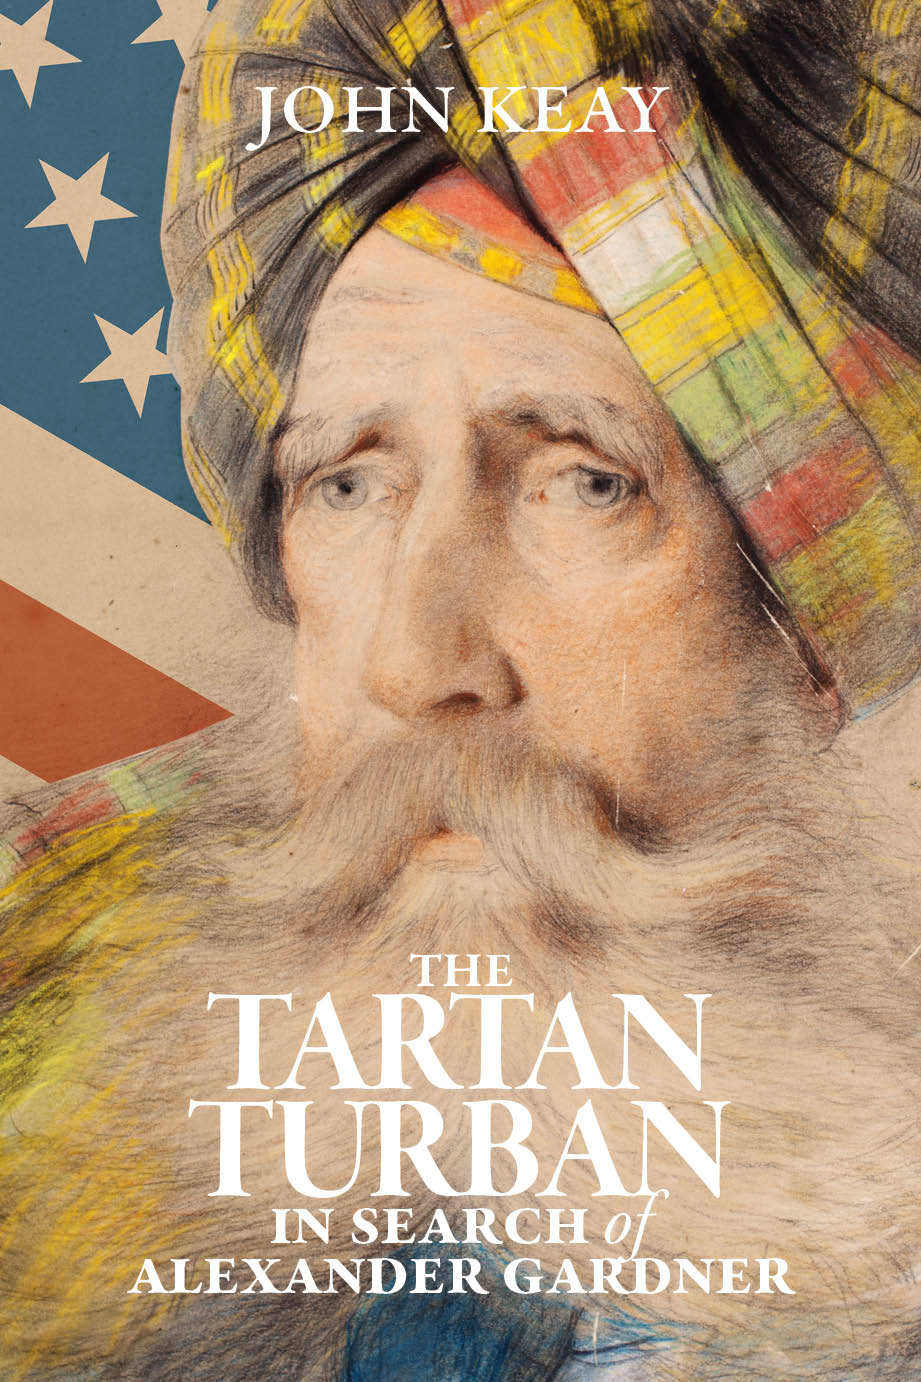 The+Tartan+Turban+by+John+Keay.jpg